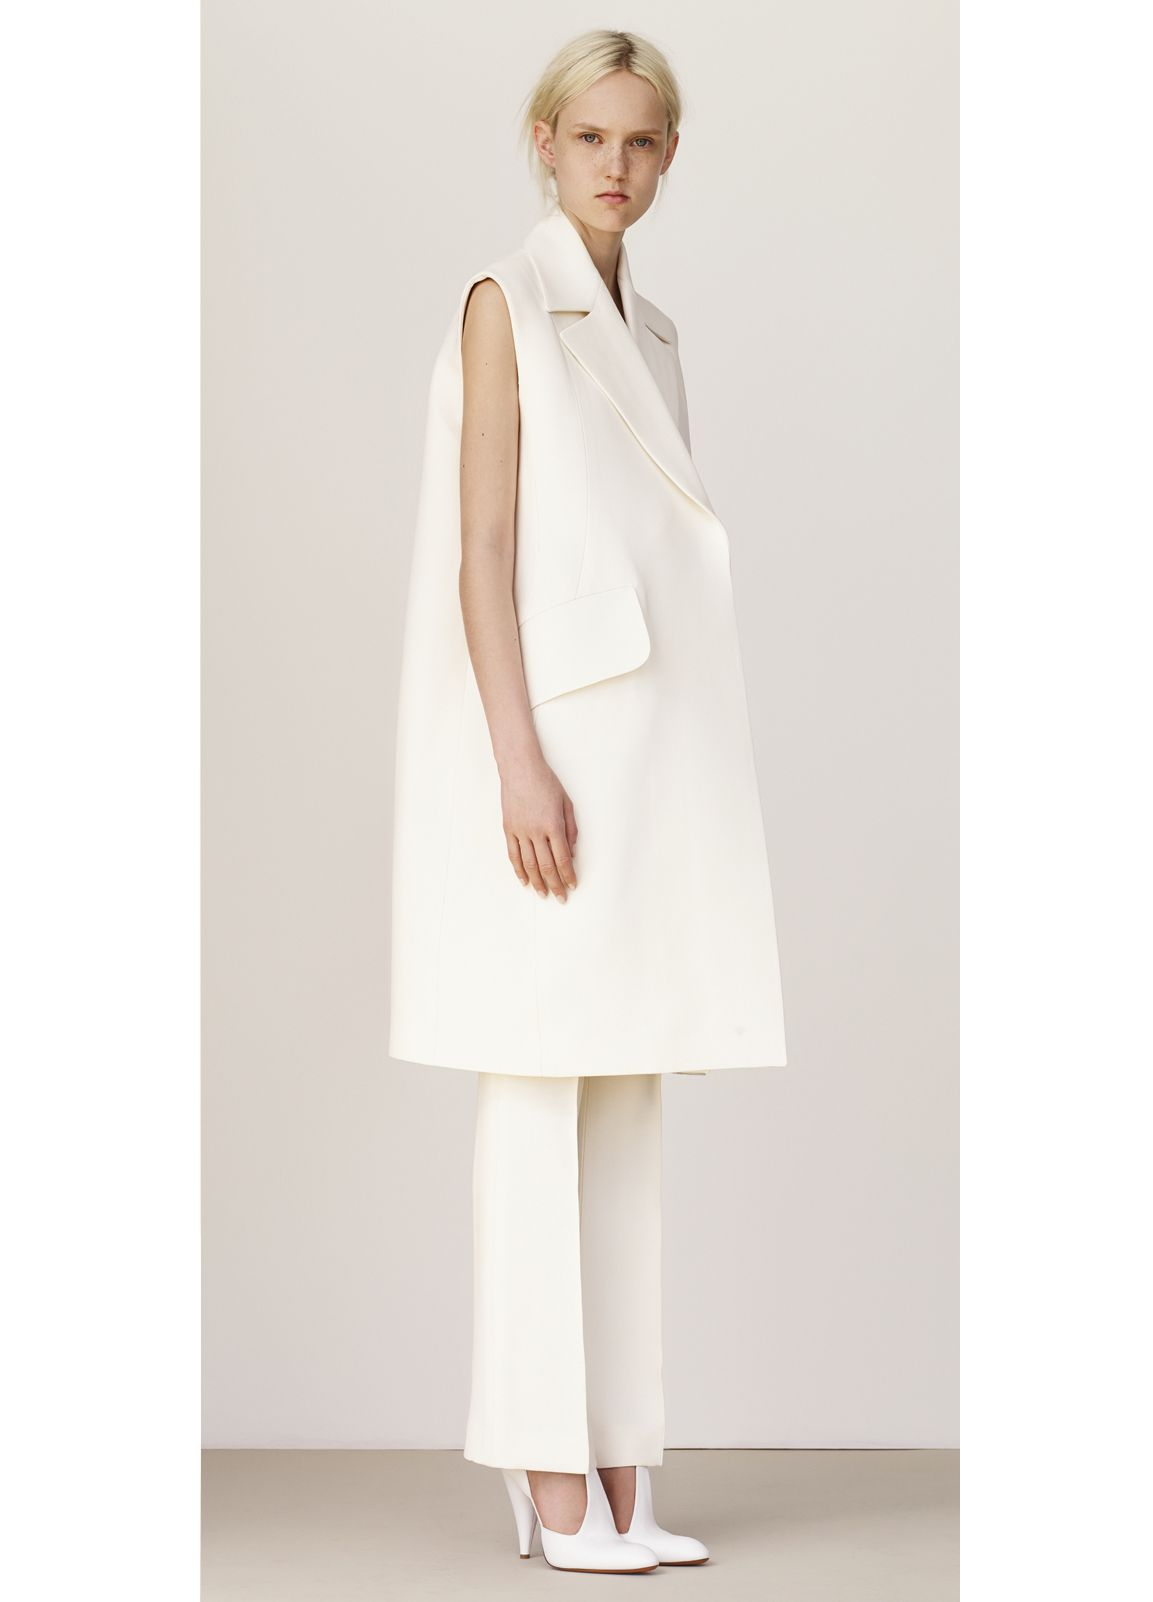 Look 15 Spring / Summer Collection 2015 collections - Ready to wear | CÉLINE SLEEVELESS COAT IN OFF WHITE WOOL CREPE , CROPPED TROUSER IN OFF WHITE WOOL CREPE